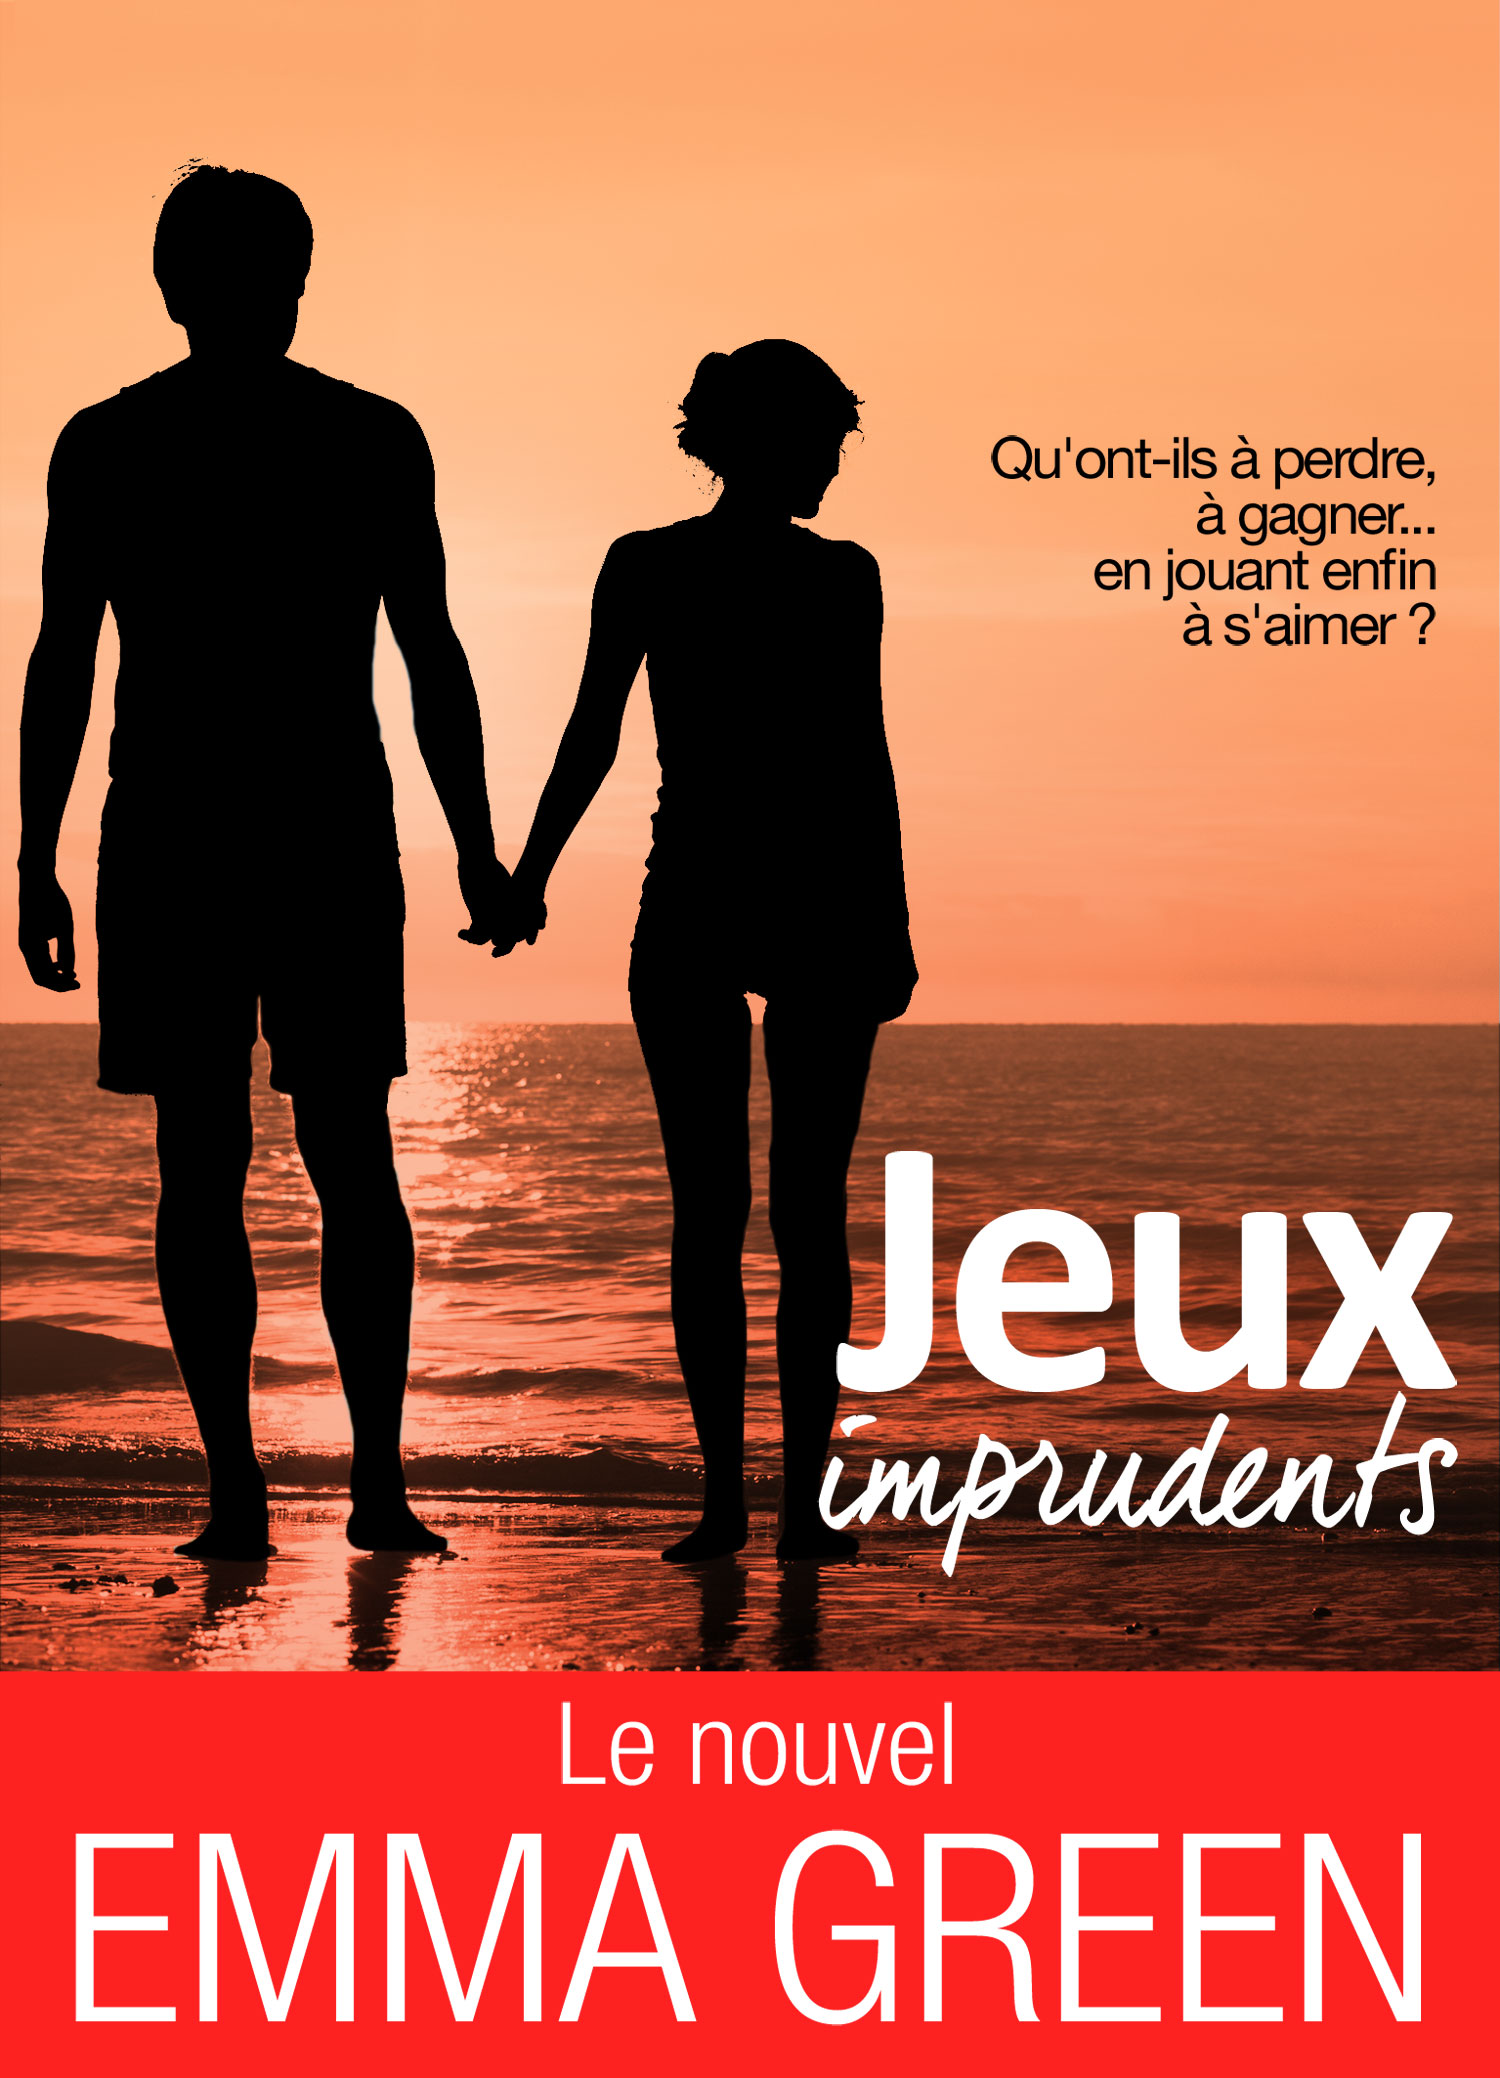 Jeux imprudents - Vol. 1 (teaser)